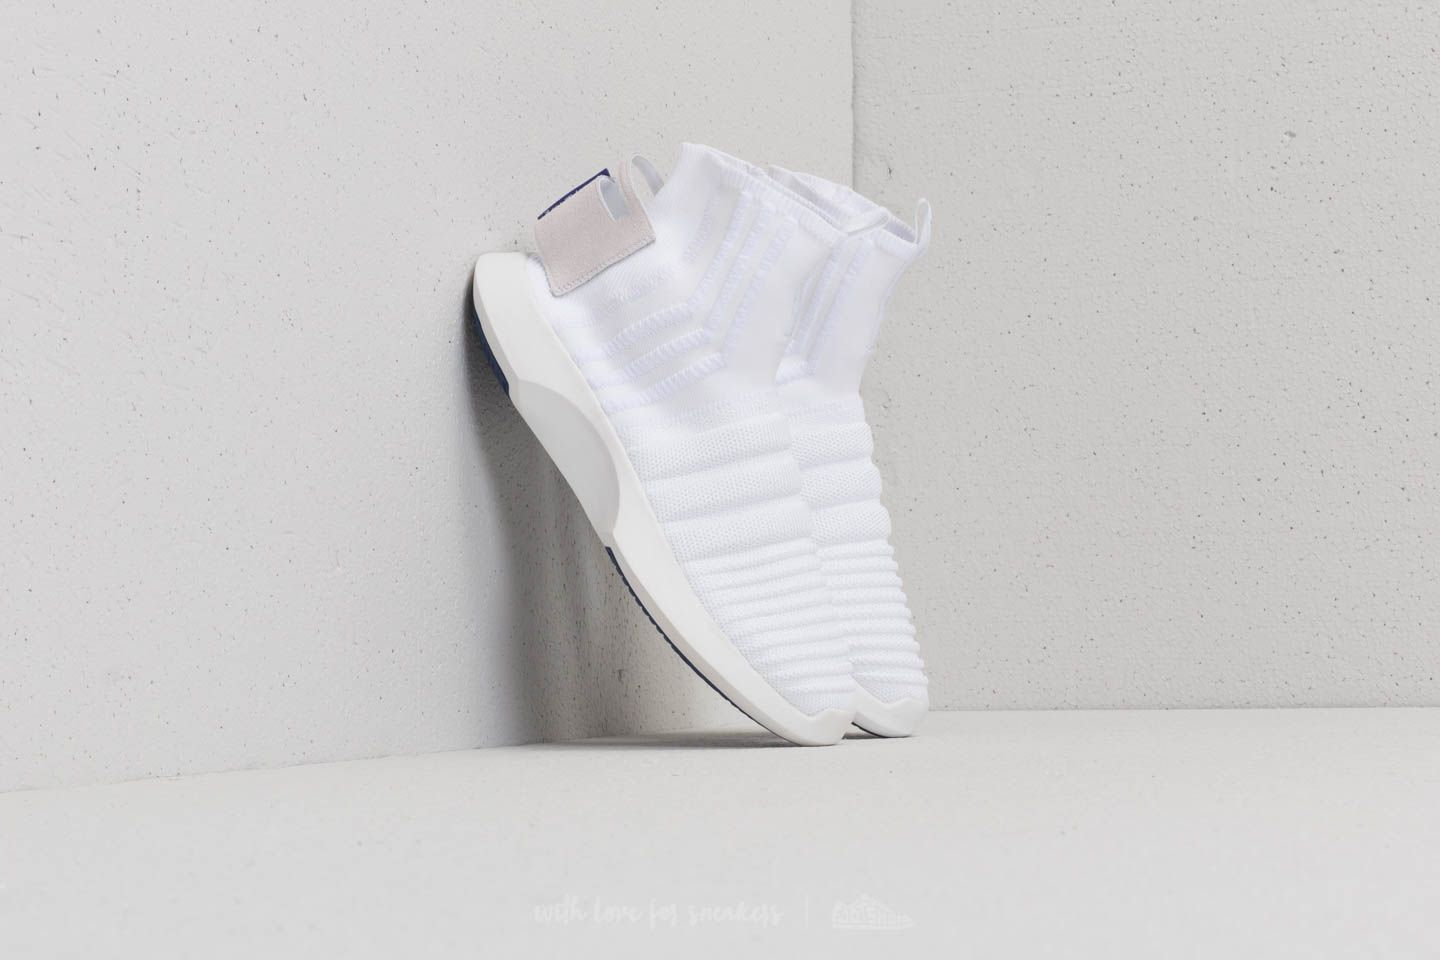 low priced 0a712 84a0d adidas Crazy 1 ADV Sock Primeknit (ASW) Ftw White  Ftw White  Real